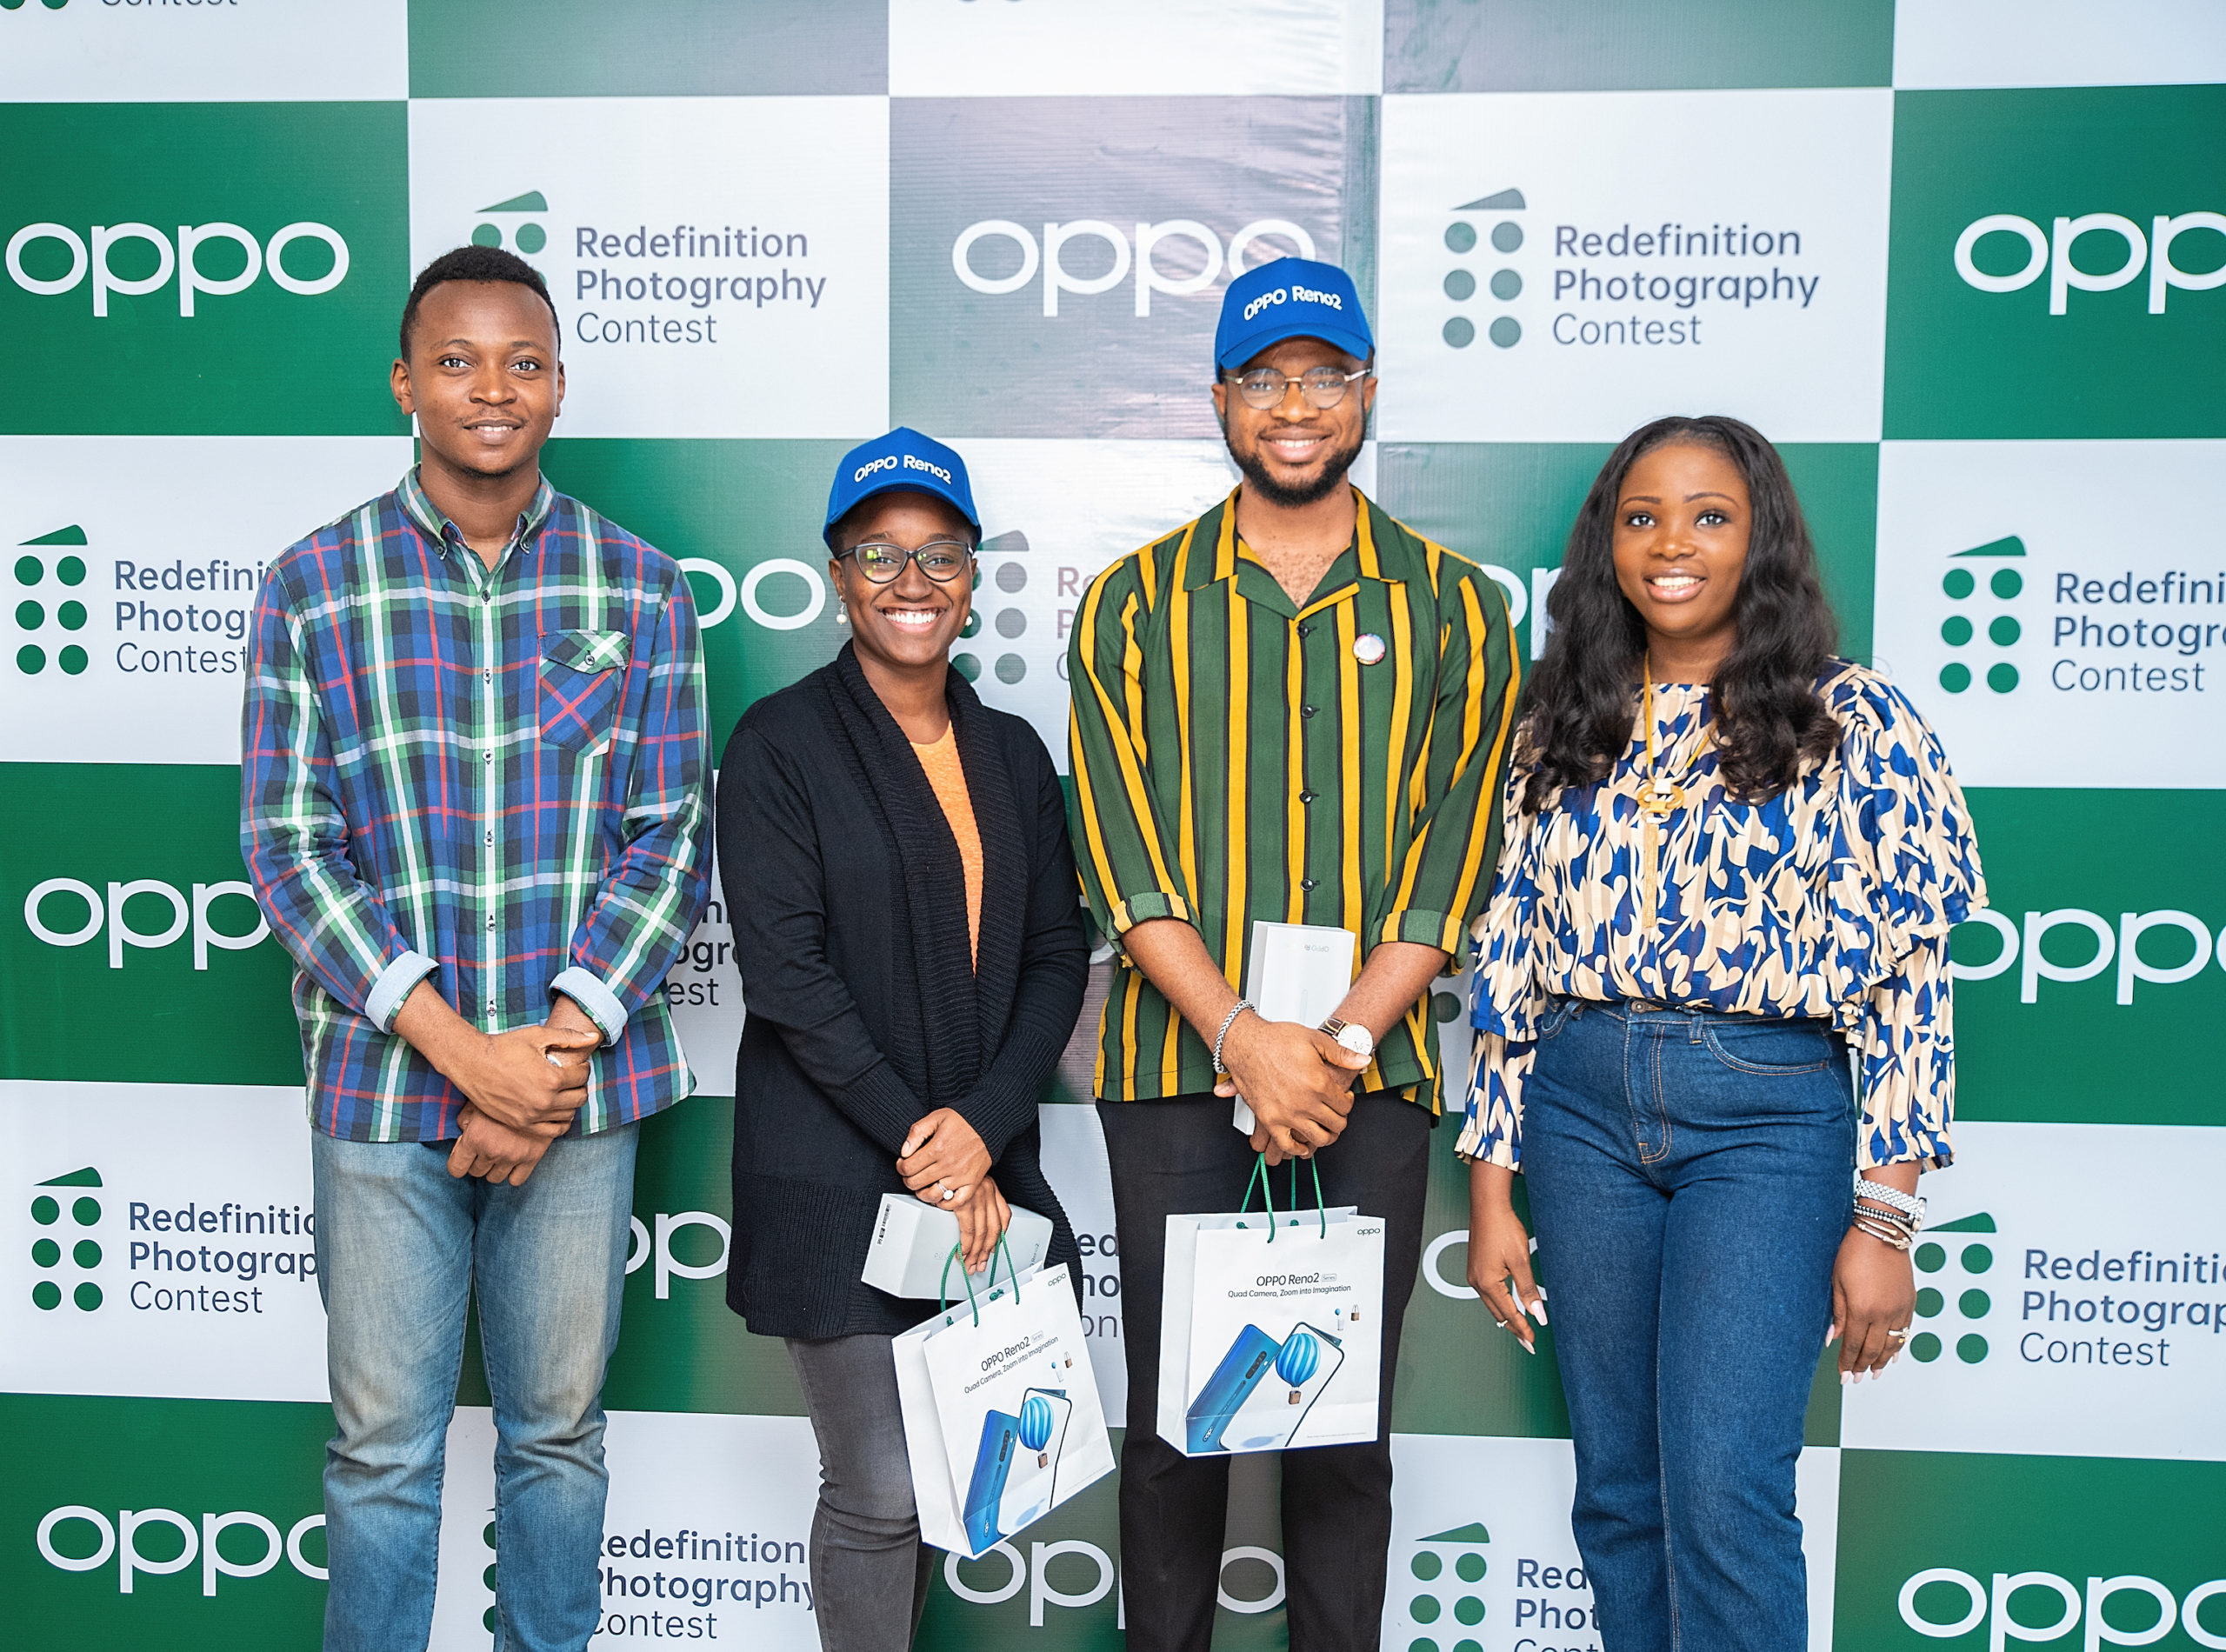 OPPO Mobile top 20 Redefinition Contest finalists announced (Photos) - Brand Spur